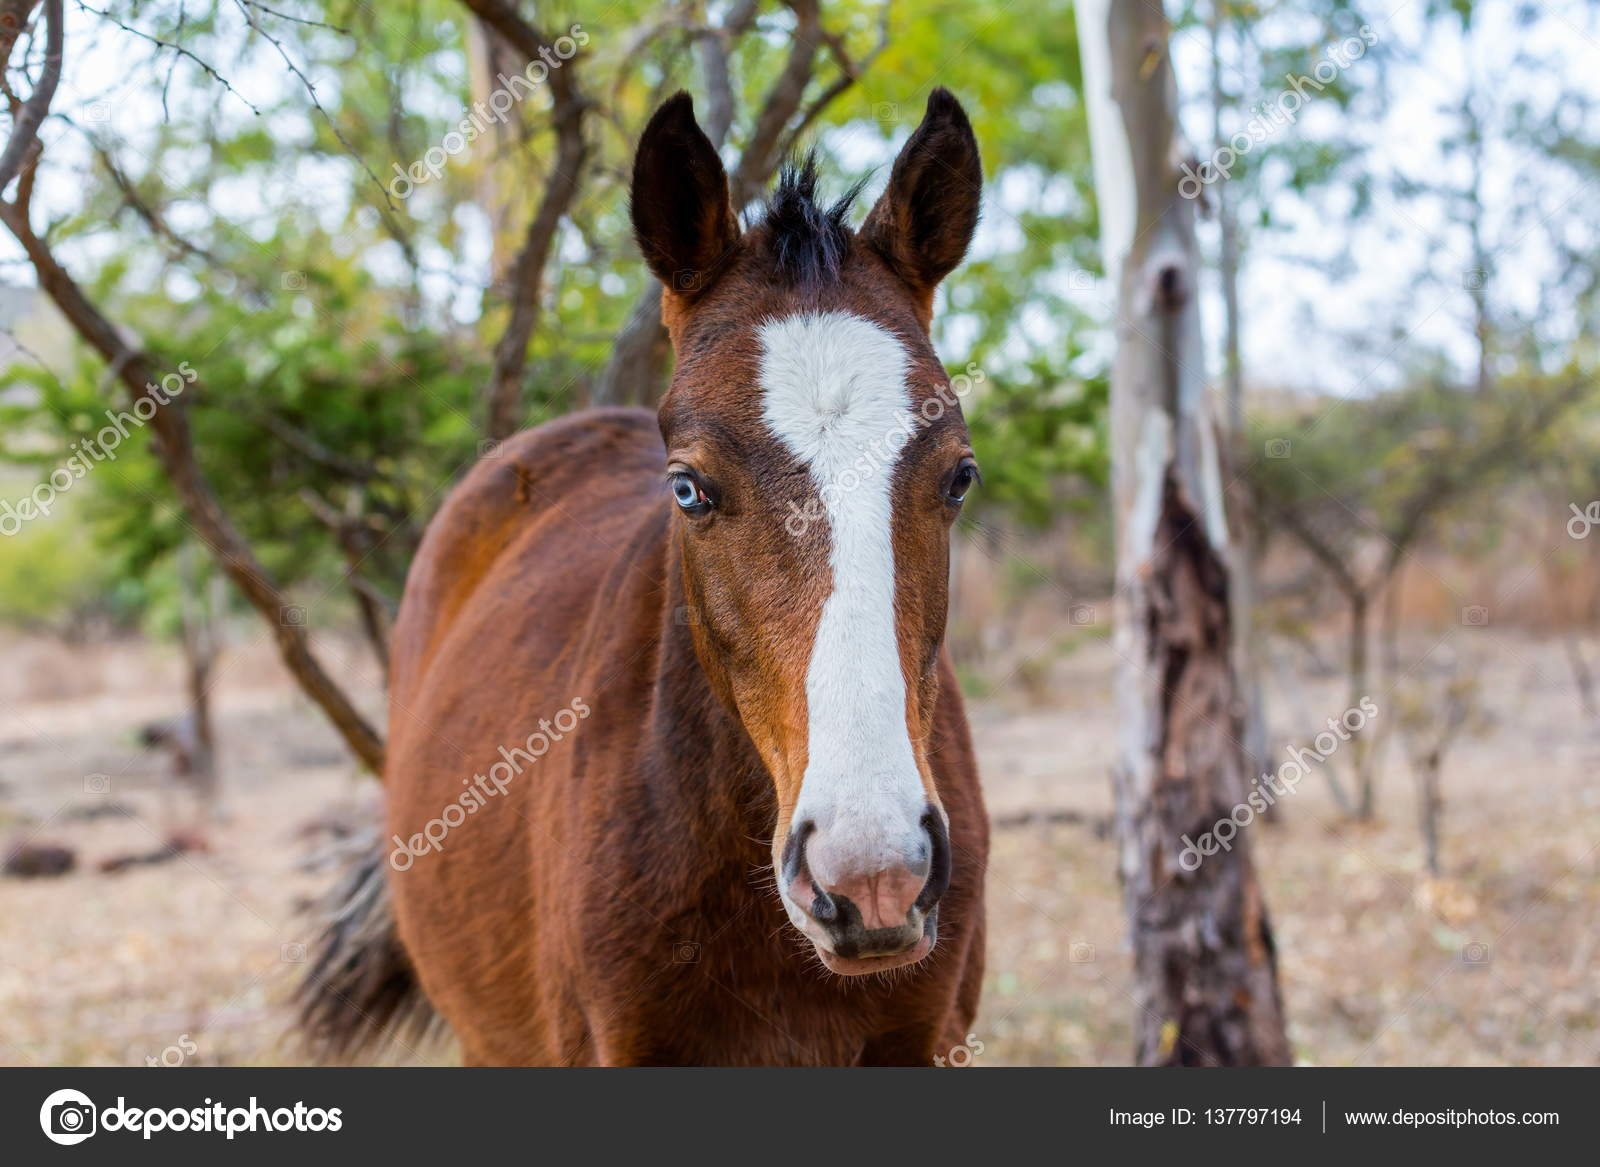 Mustang Horse Roaming Wild In Mexico Stock Photo C Campbell2 Sympatico Ca 137797194